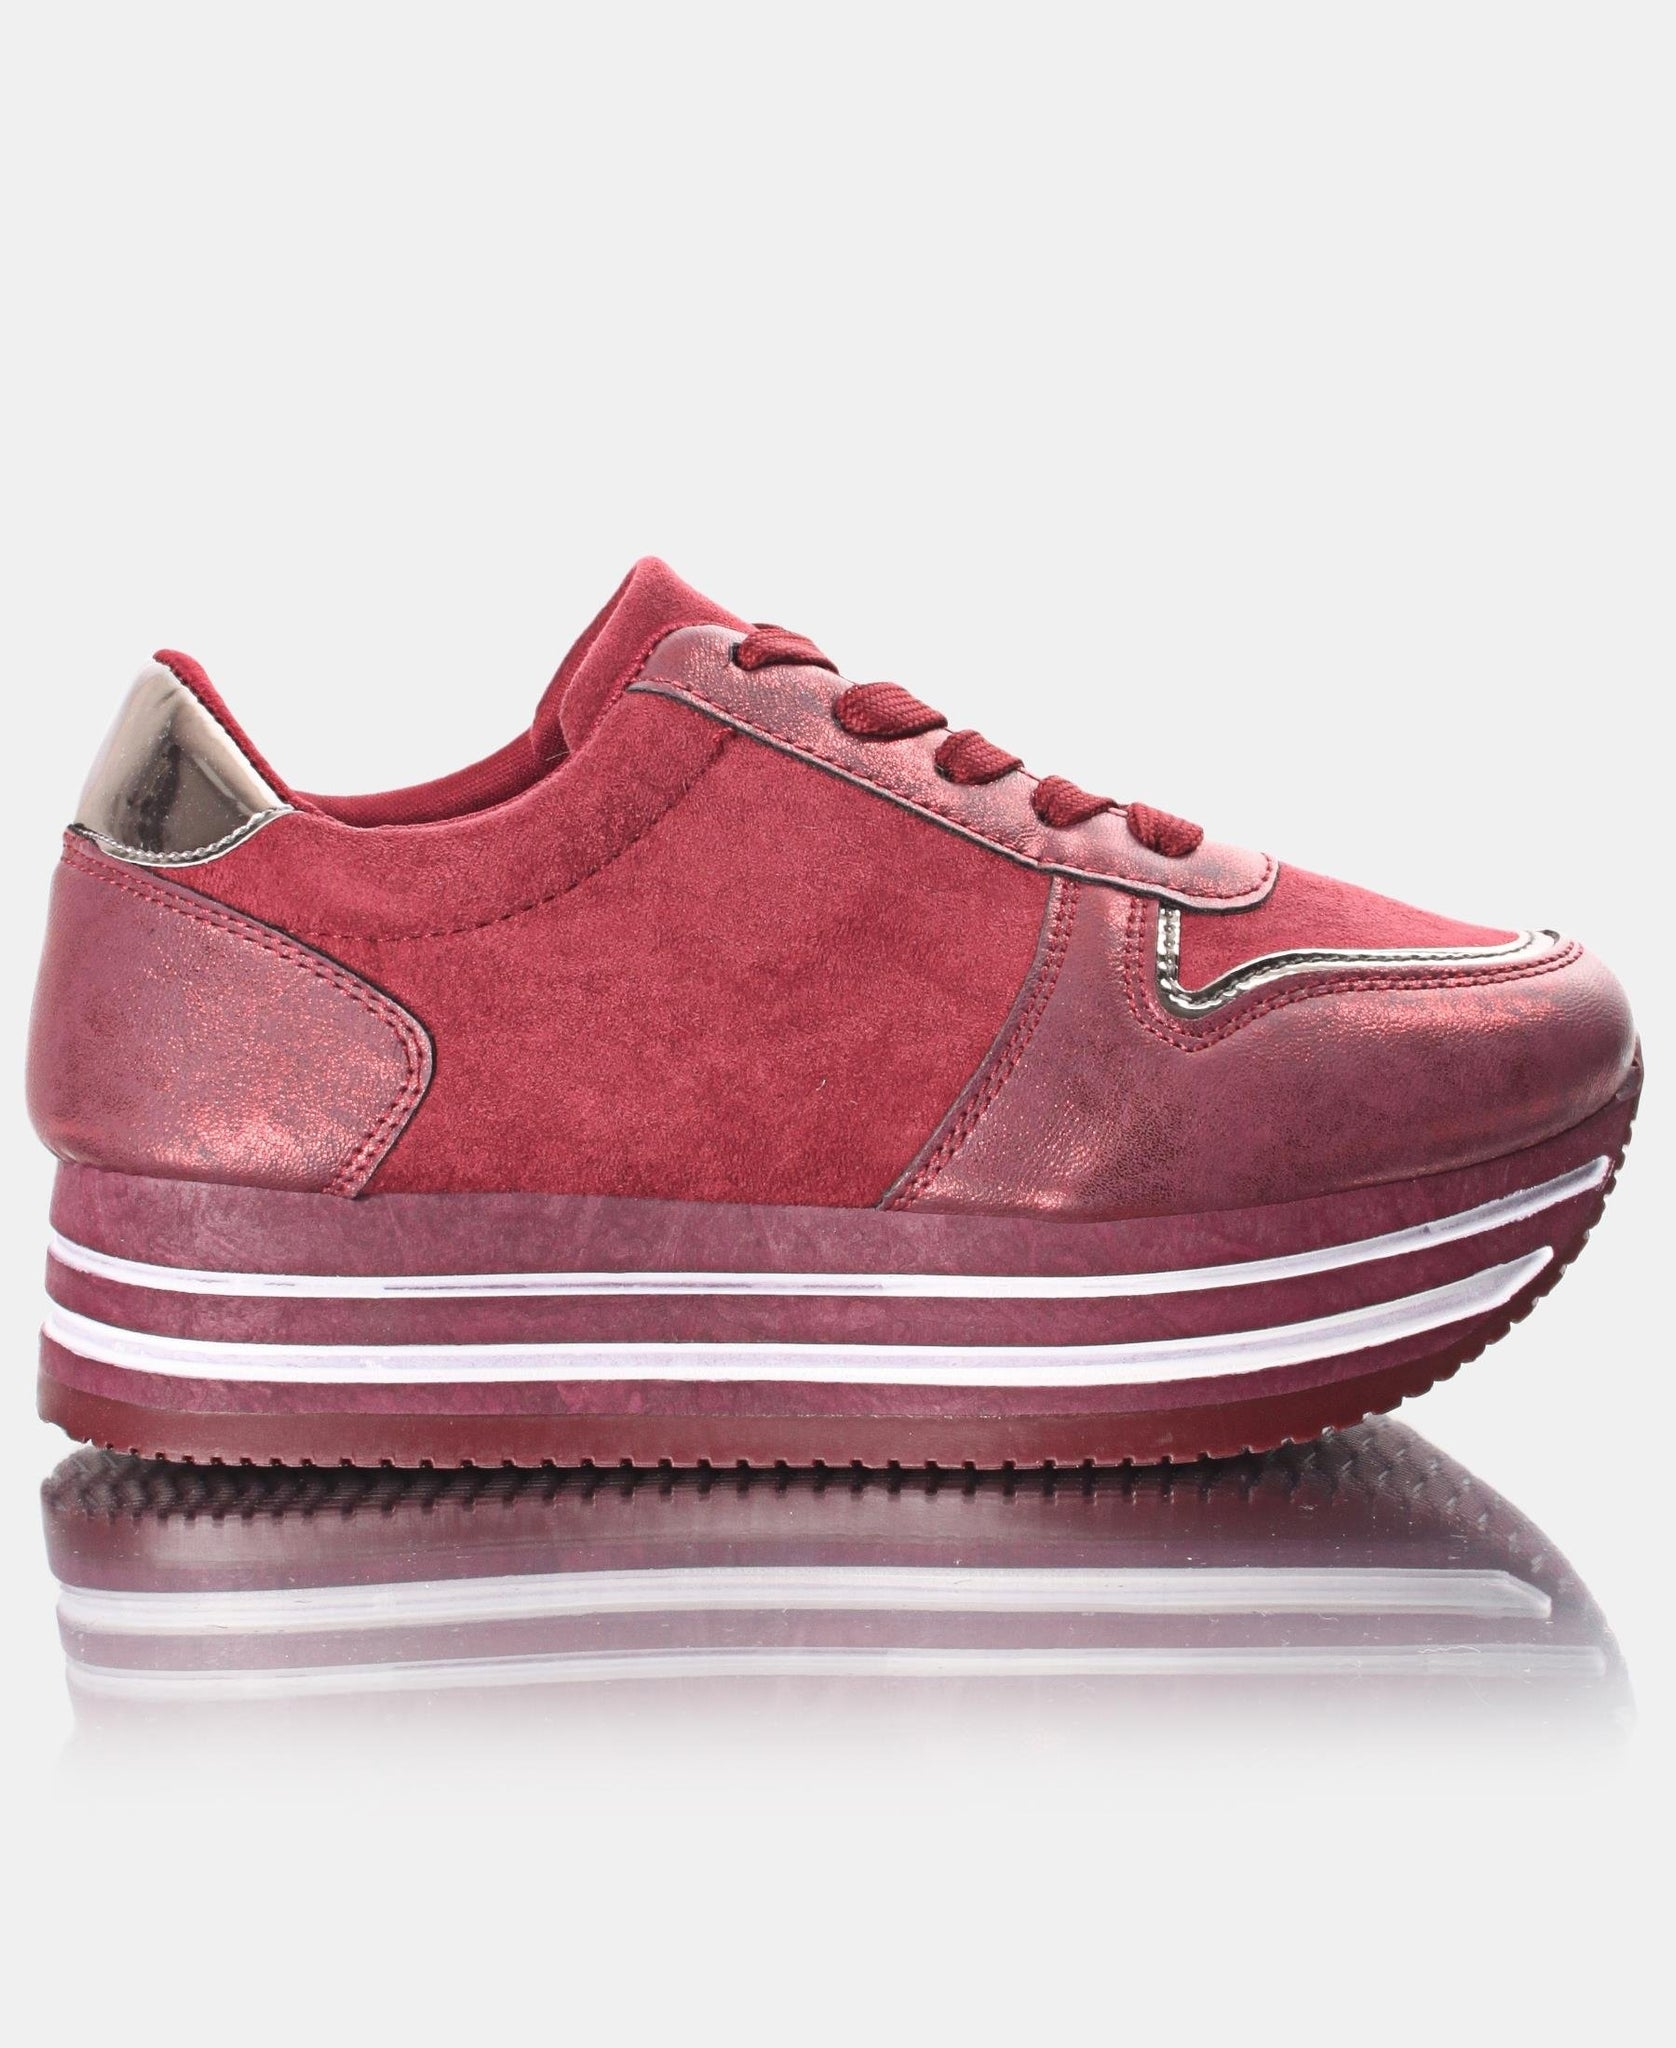 Ladies' Rock Micro Sneakers - Burgundy